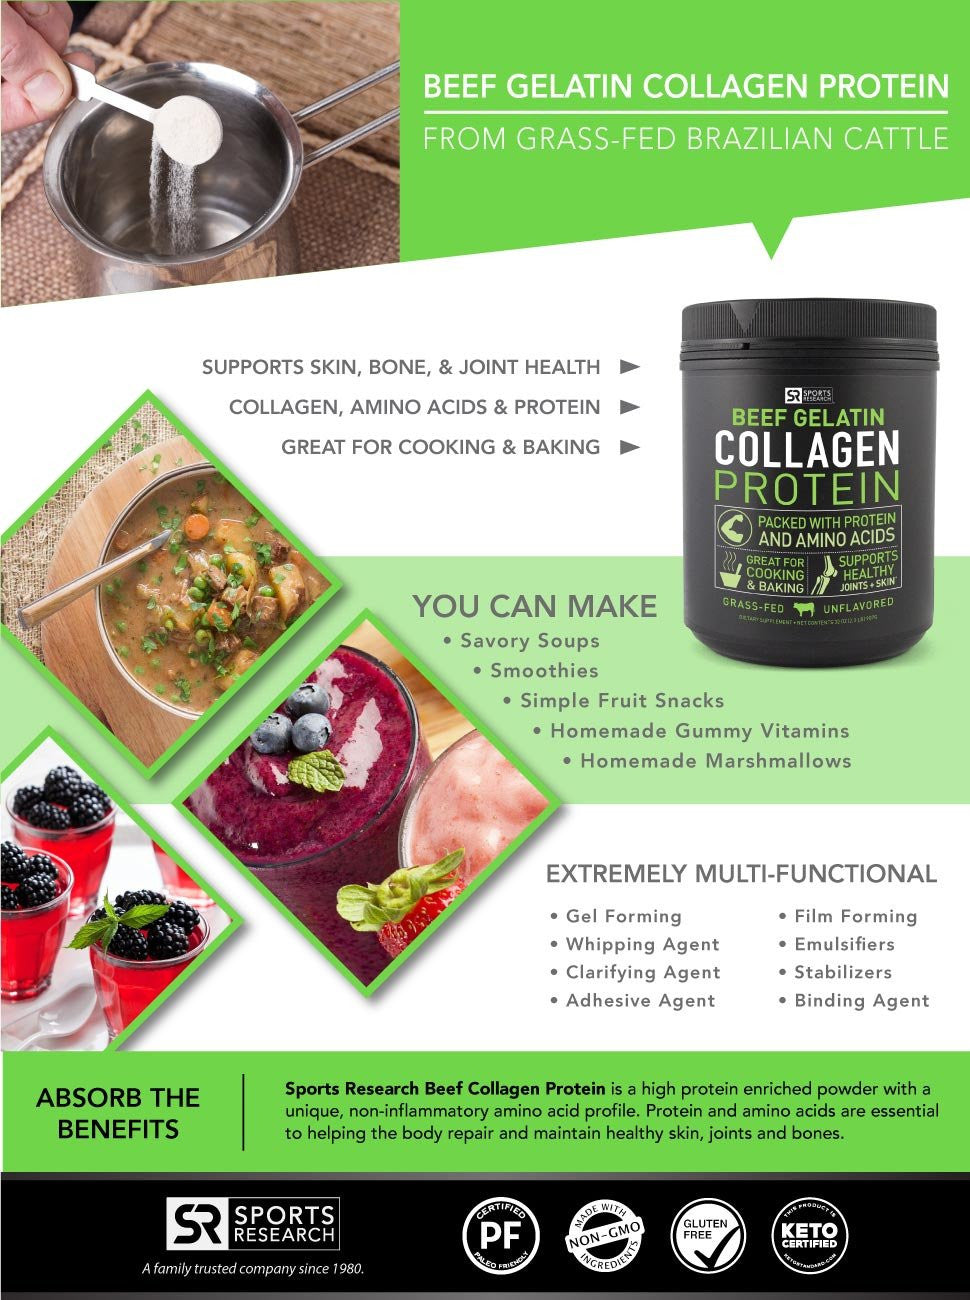 Sports Research Beef Collagen Protein